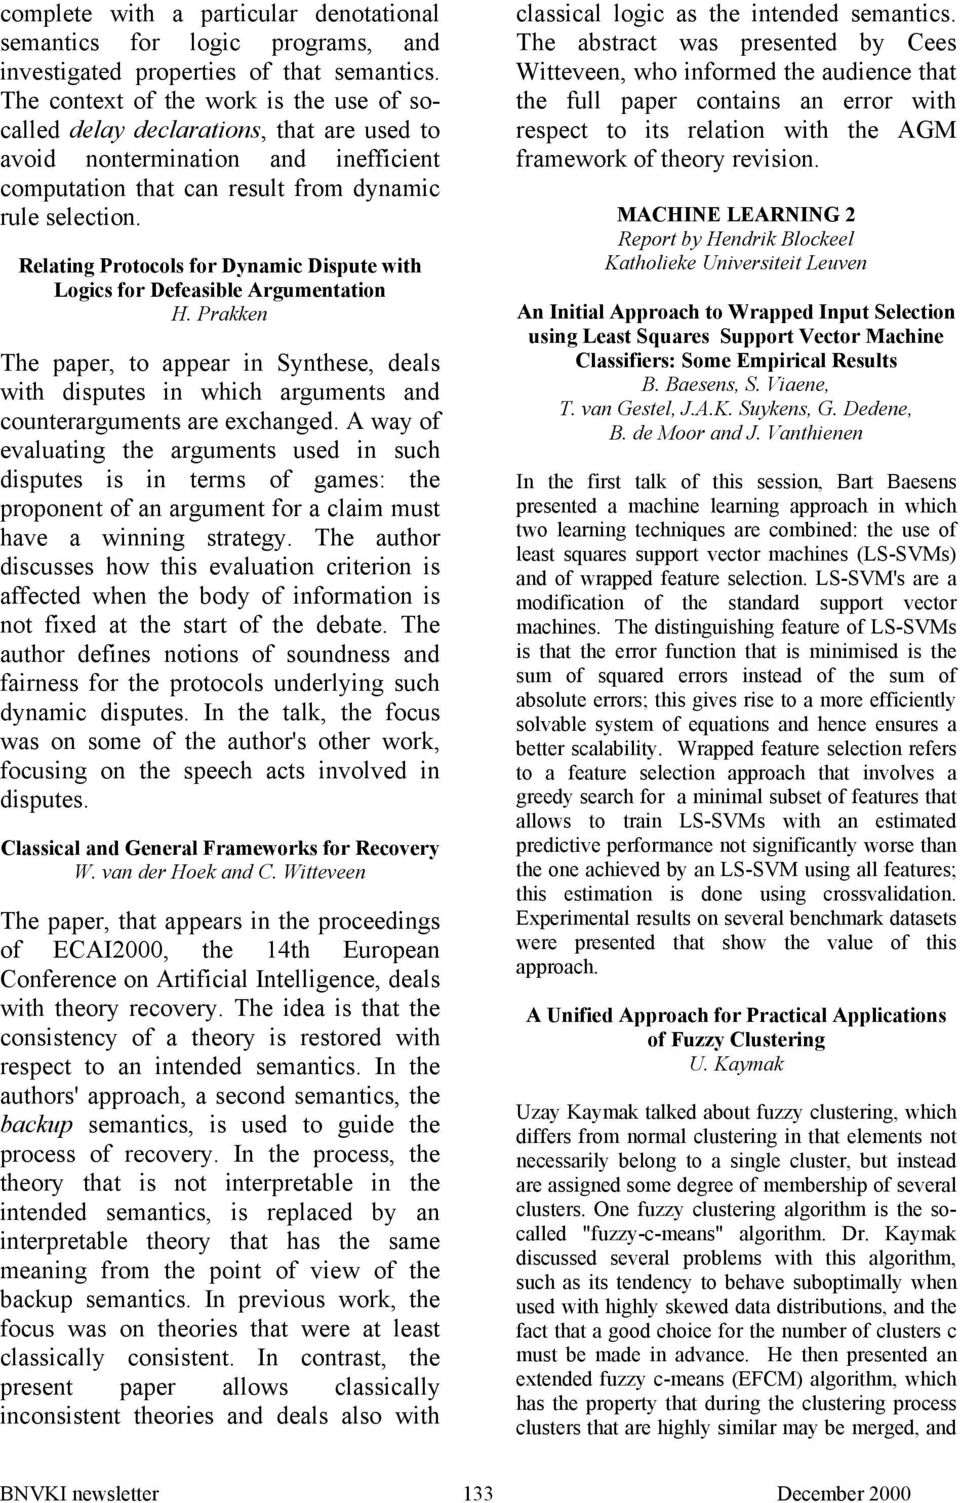 Relating Protocols for Dynamic Dispute with Logics for Defeasible Argumentation H. Prakken The paper, to appear in Synthese, deals with disputes in which arguments and counterarguments are exchanged.